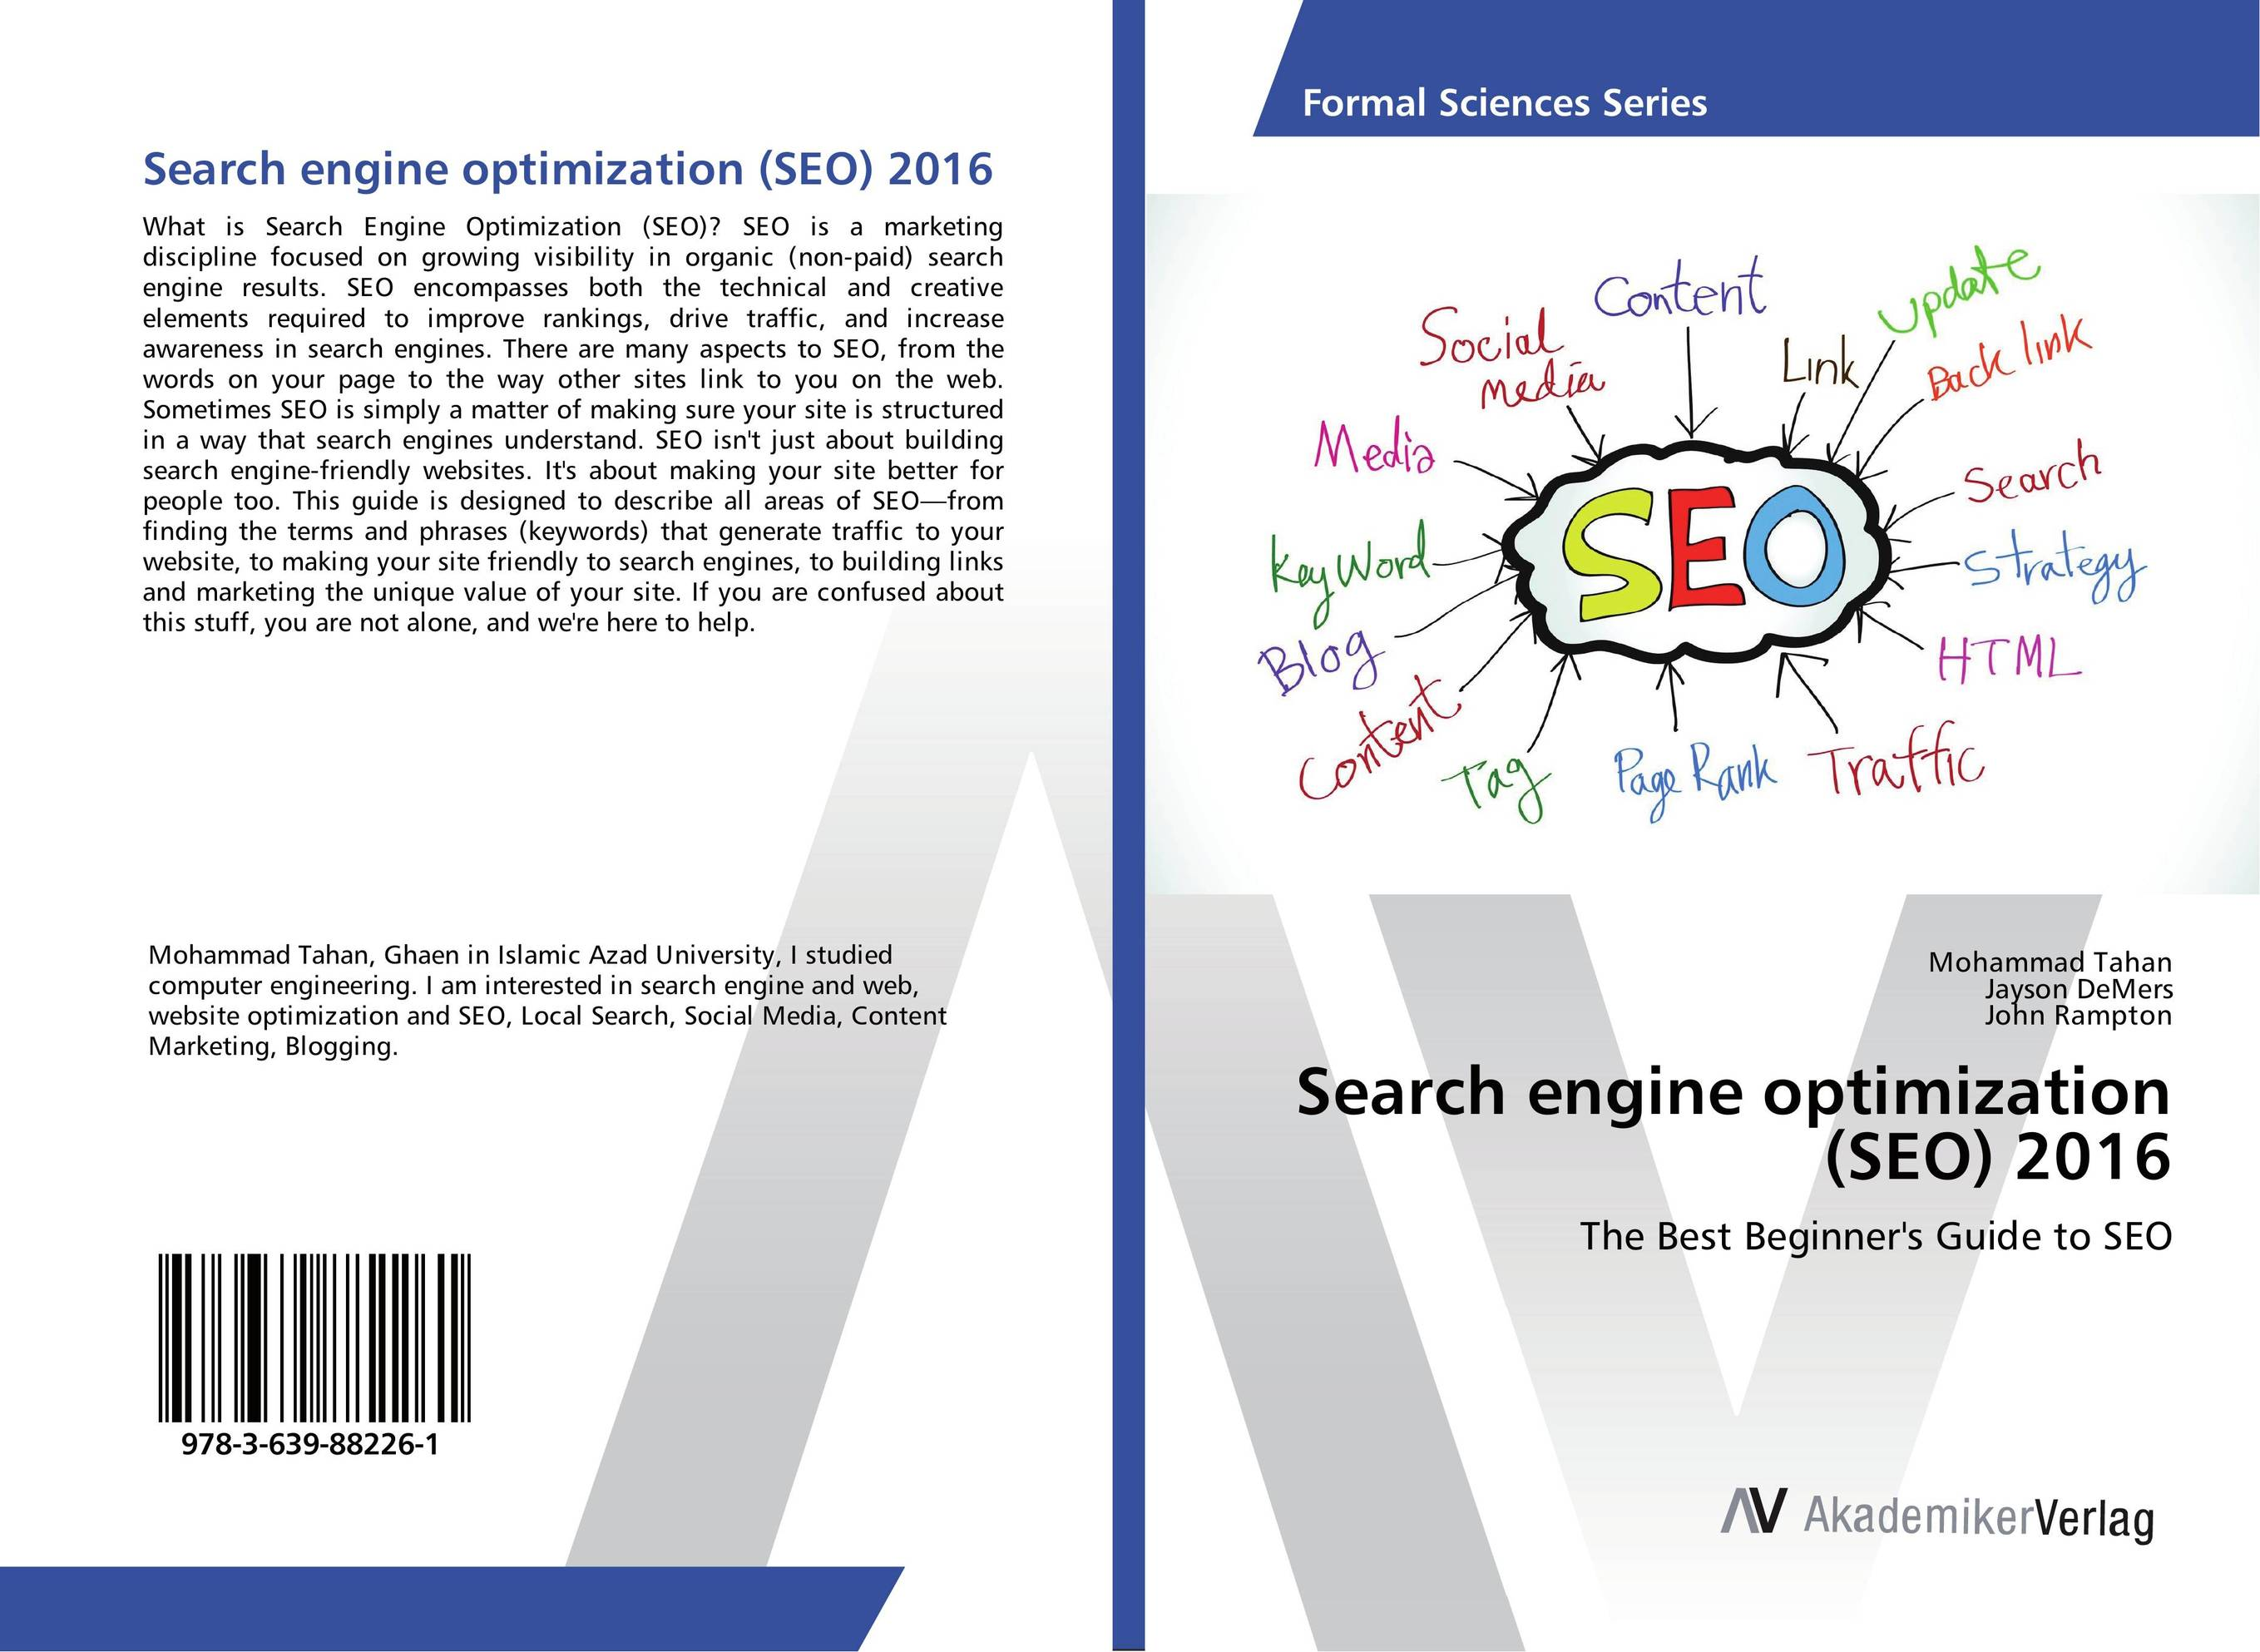 Search engine optimization (SEO) 2016 bruce clay search engine optimization all in one for dummies